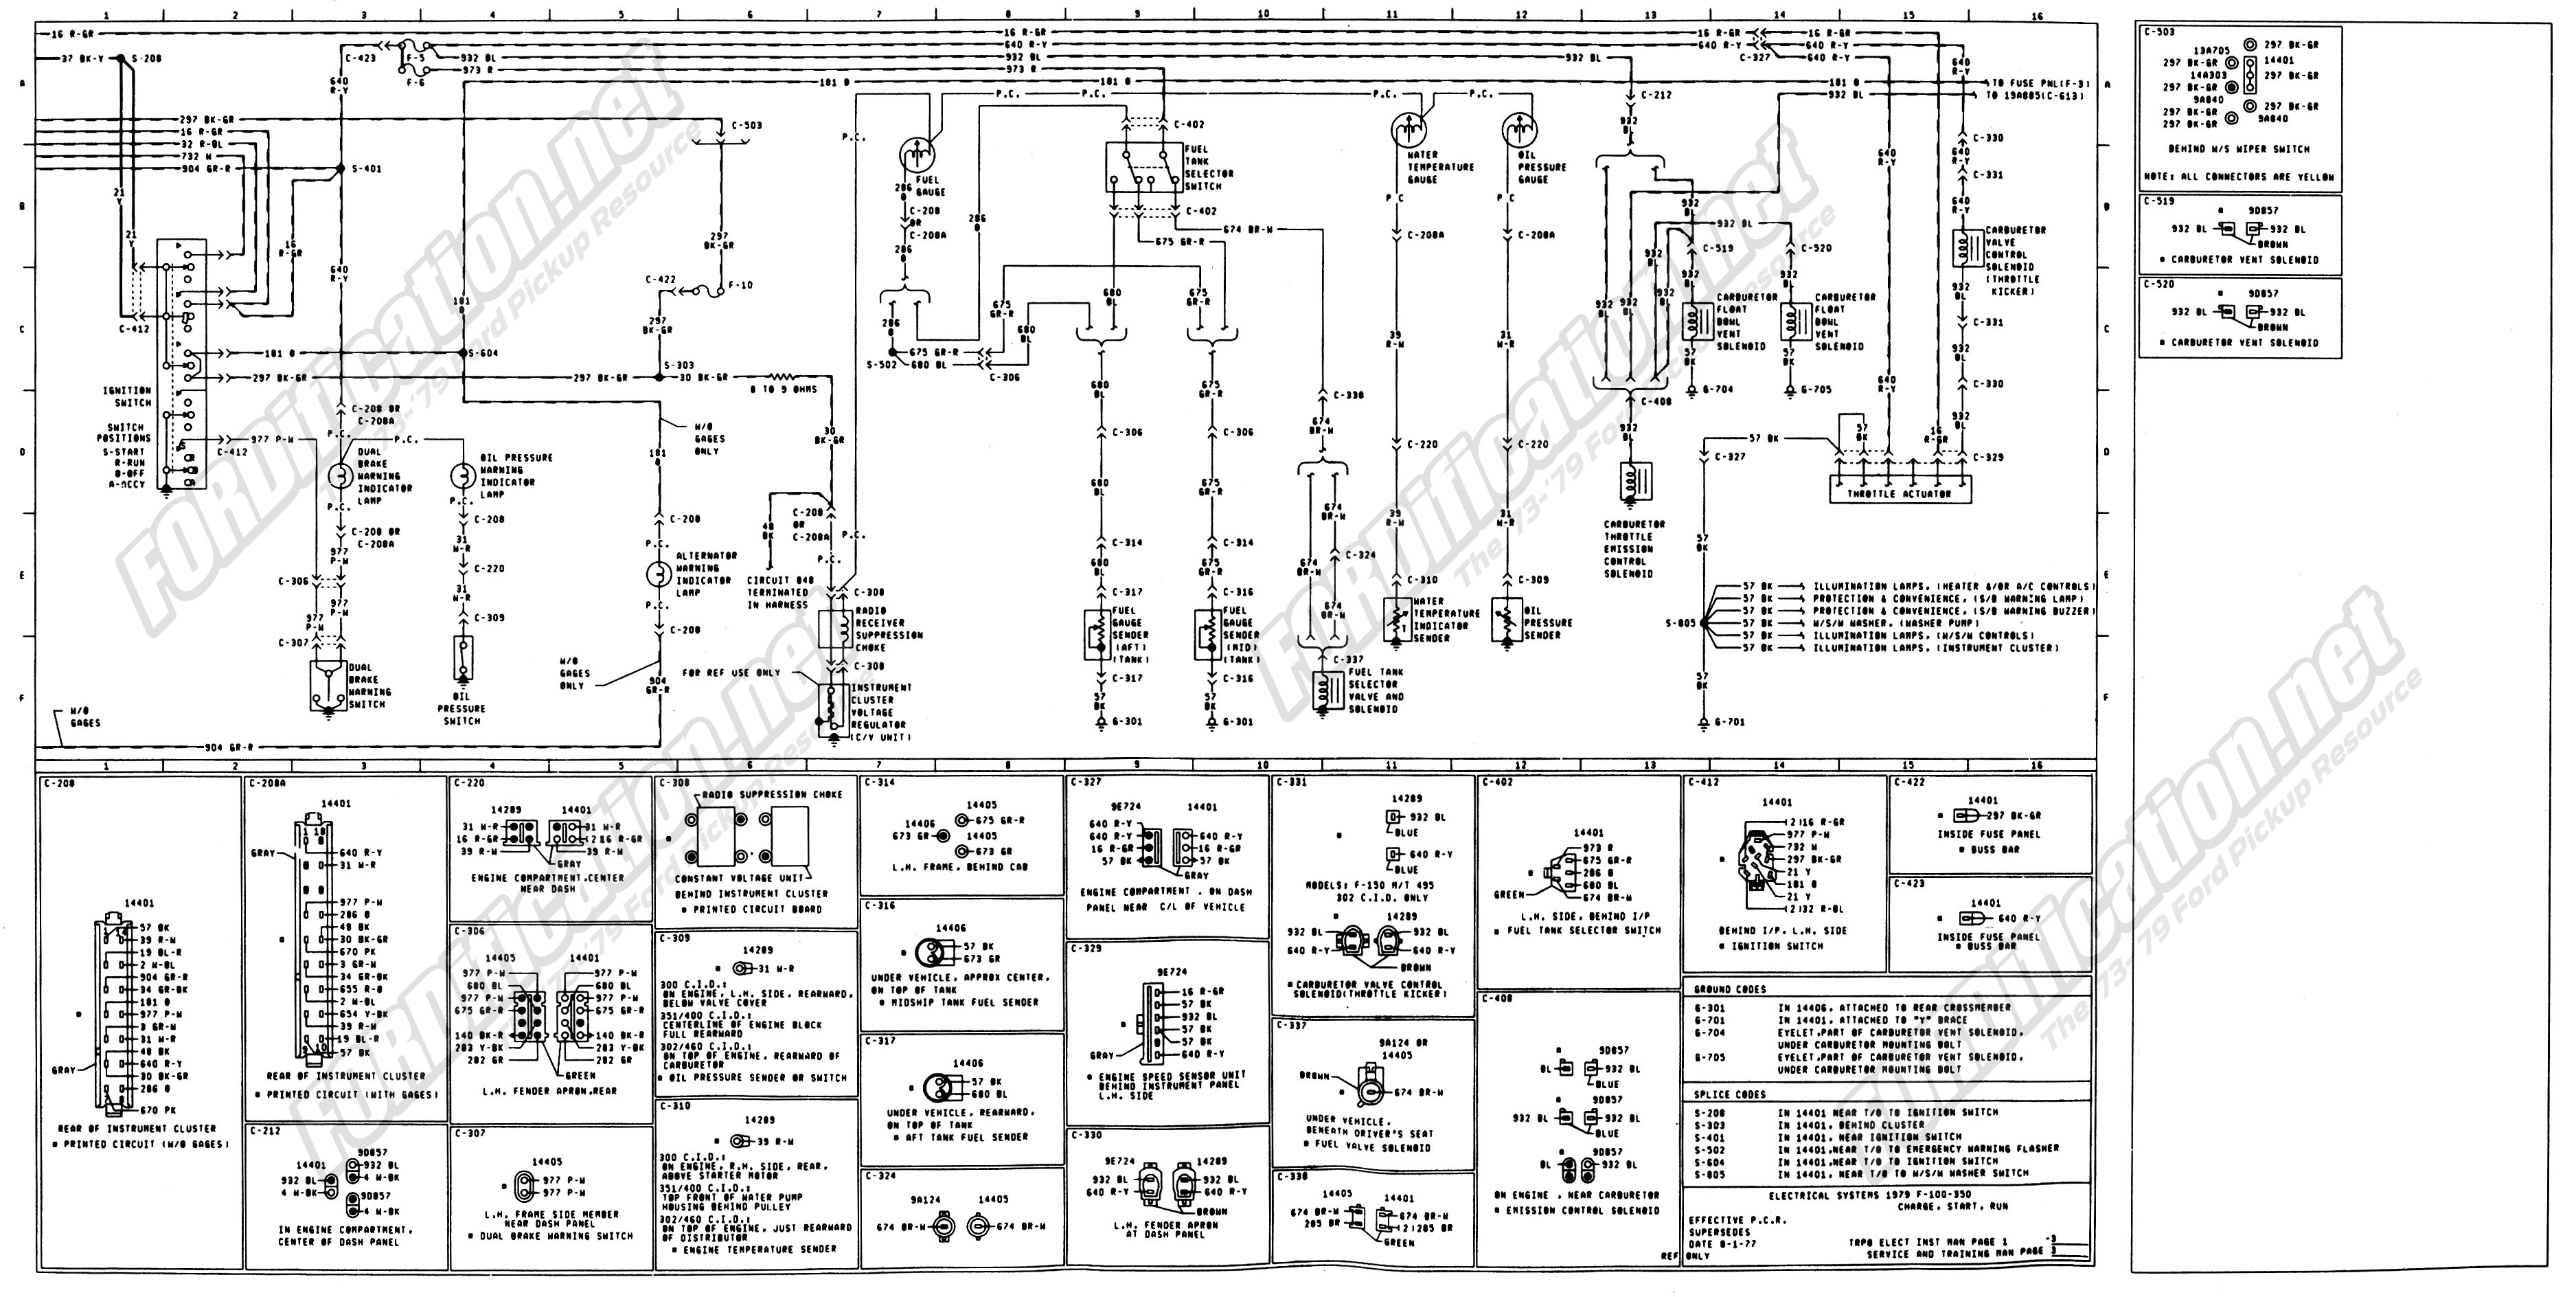 4a2ac fuse diagram for 97 ranger gas guage | wiring library  wiring library